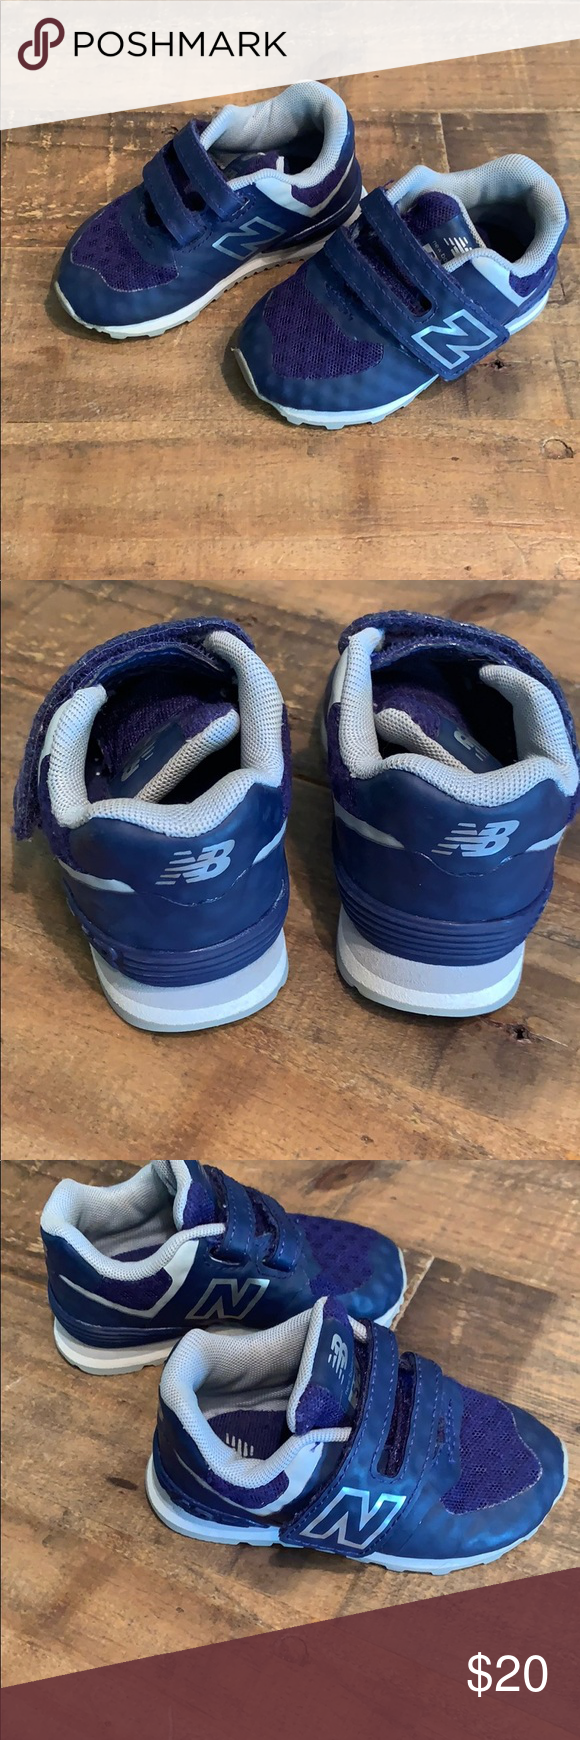 Toddler New Balance tennis shoes New